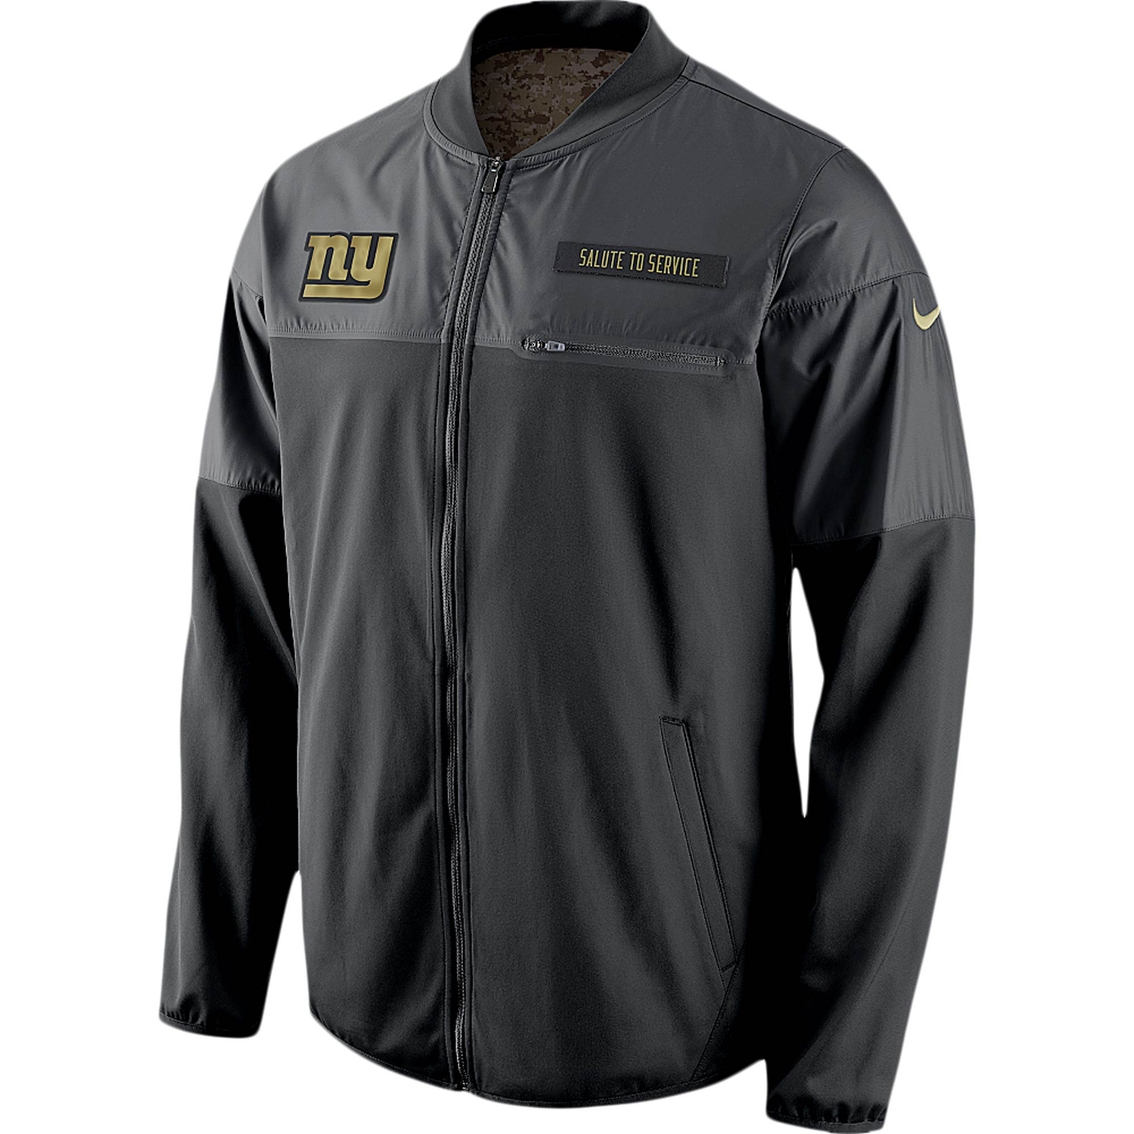 sports shoes c7bc6 e896c Nike Nfl New York Giants Salute To Service Jacket | Hoodies ...